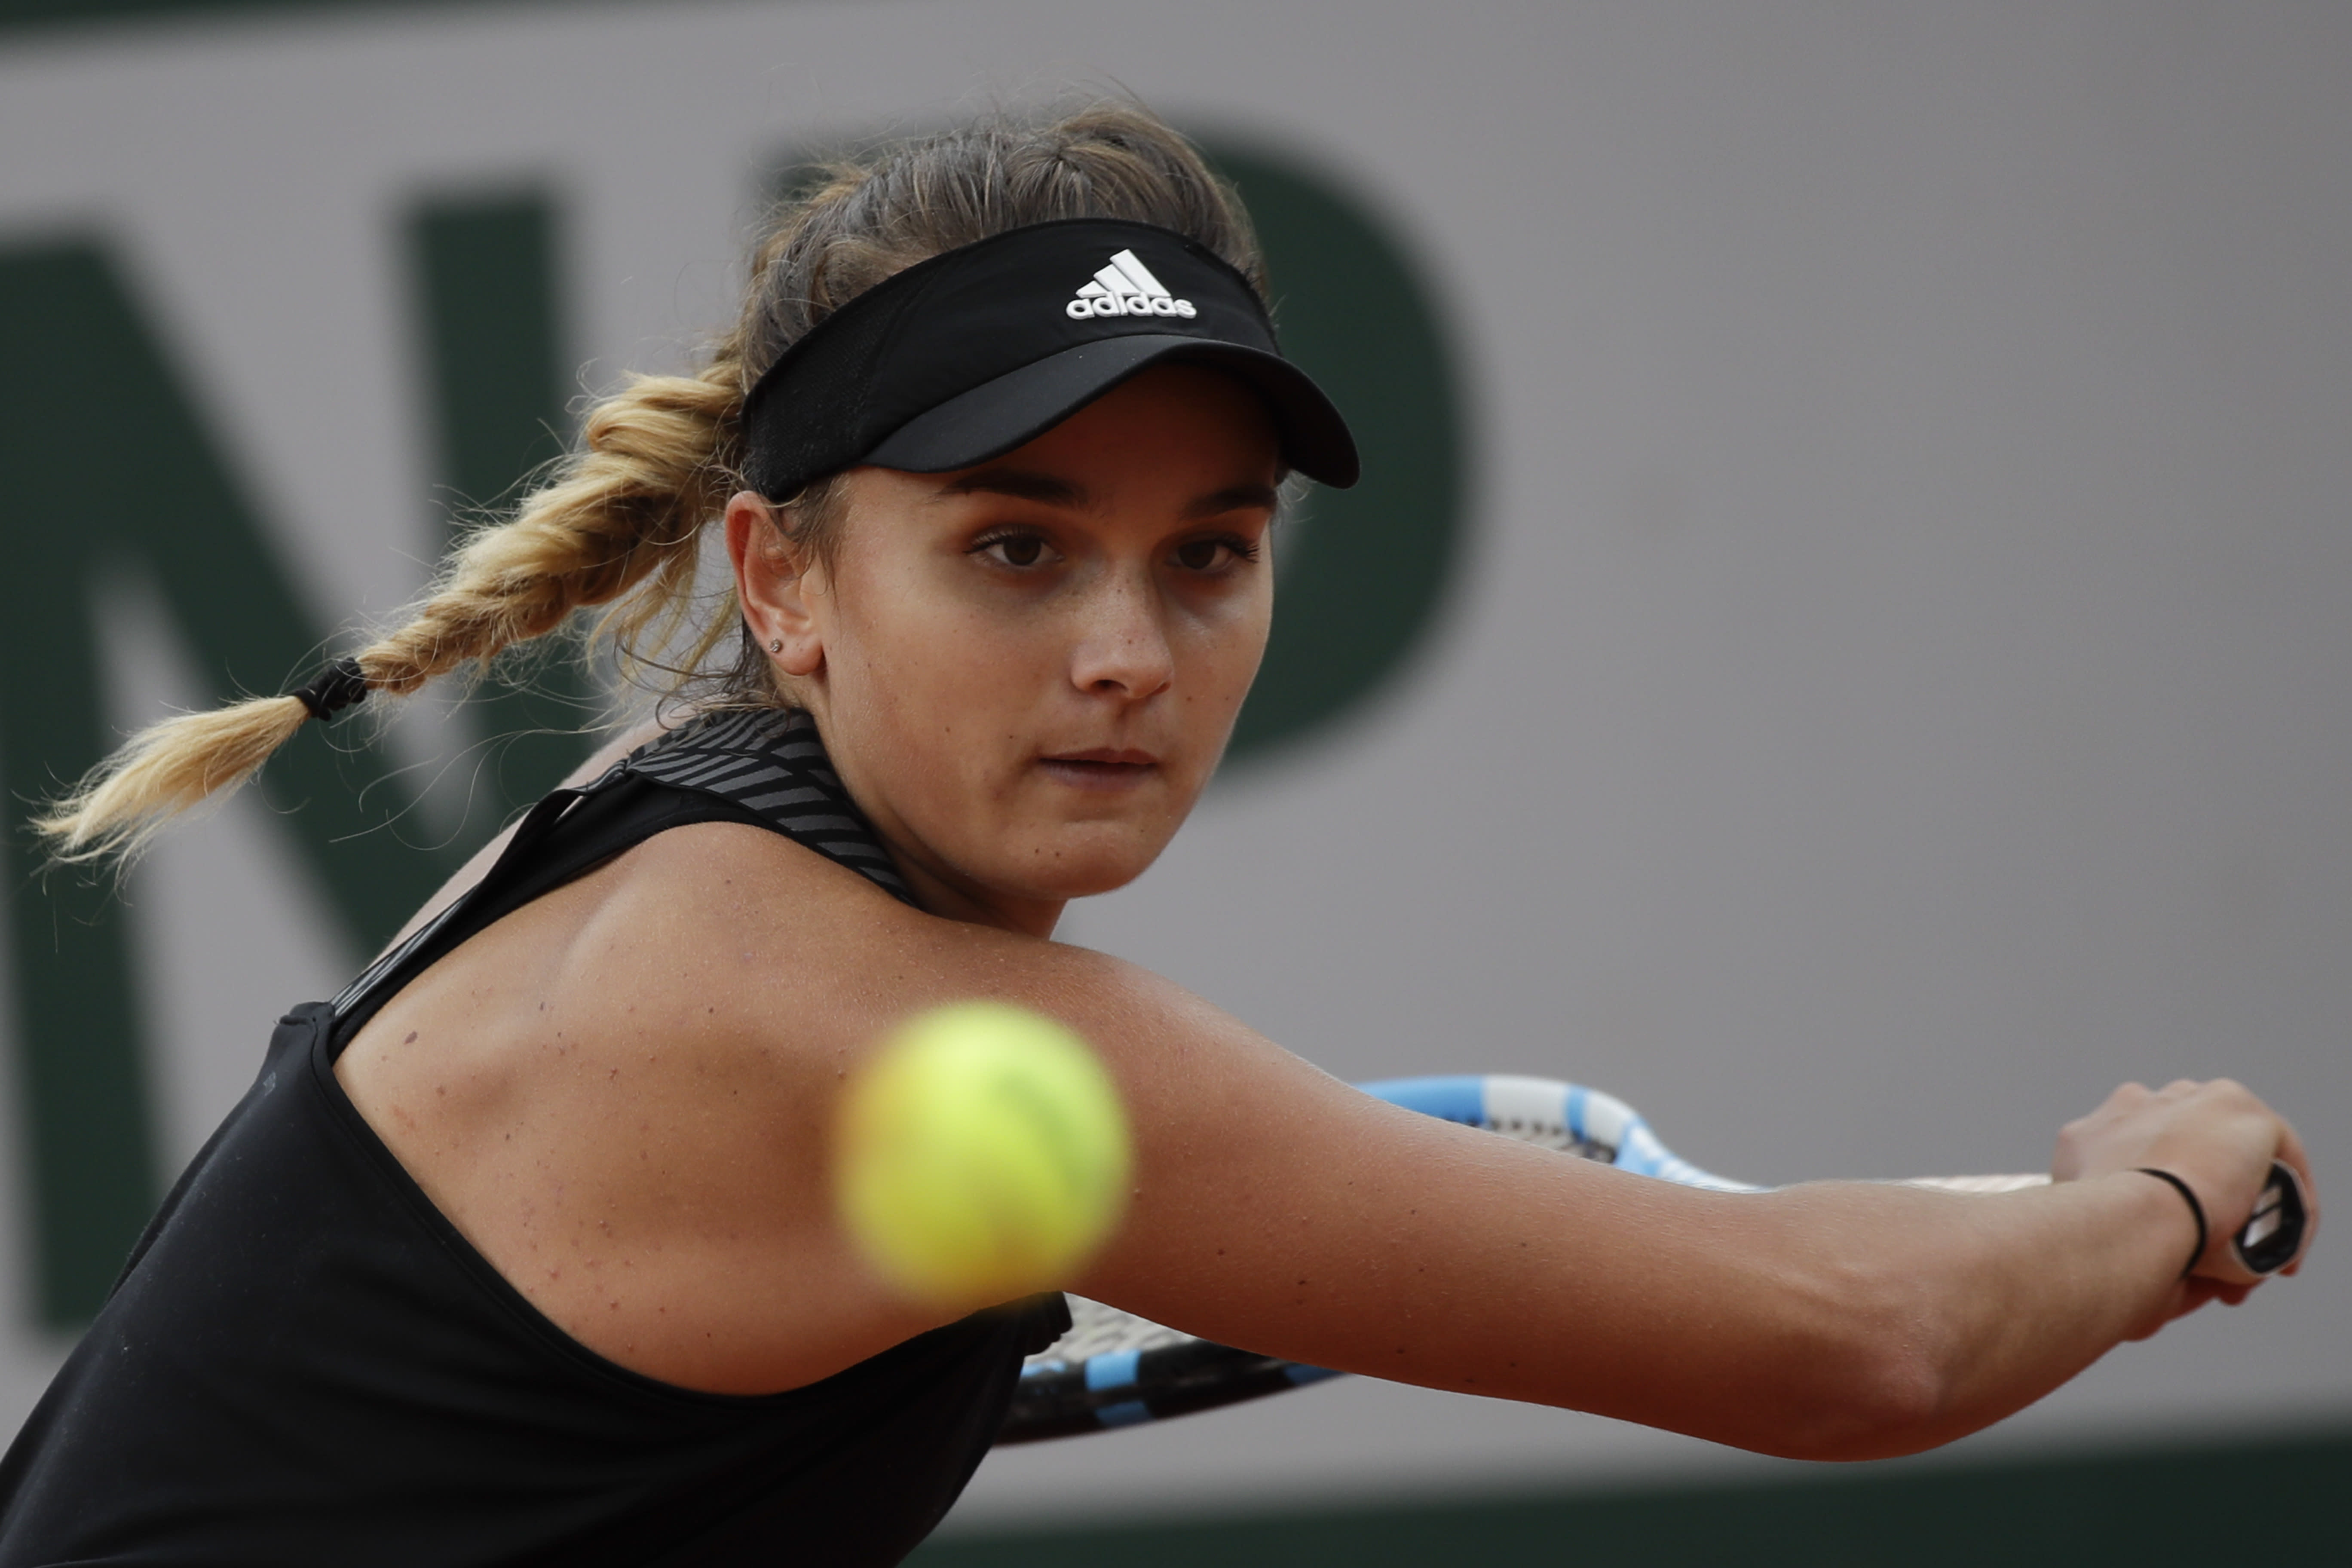 France's Clara Burel plays a shot against China's Zhang Shuai in the third round match of the French Open tennis tournament at the Roland Garros stadium in Paris, France, Saturday, Oct. 3, 2020. (AP Photo/Alessandra Tarantino)